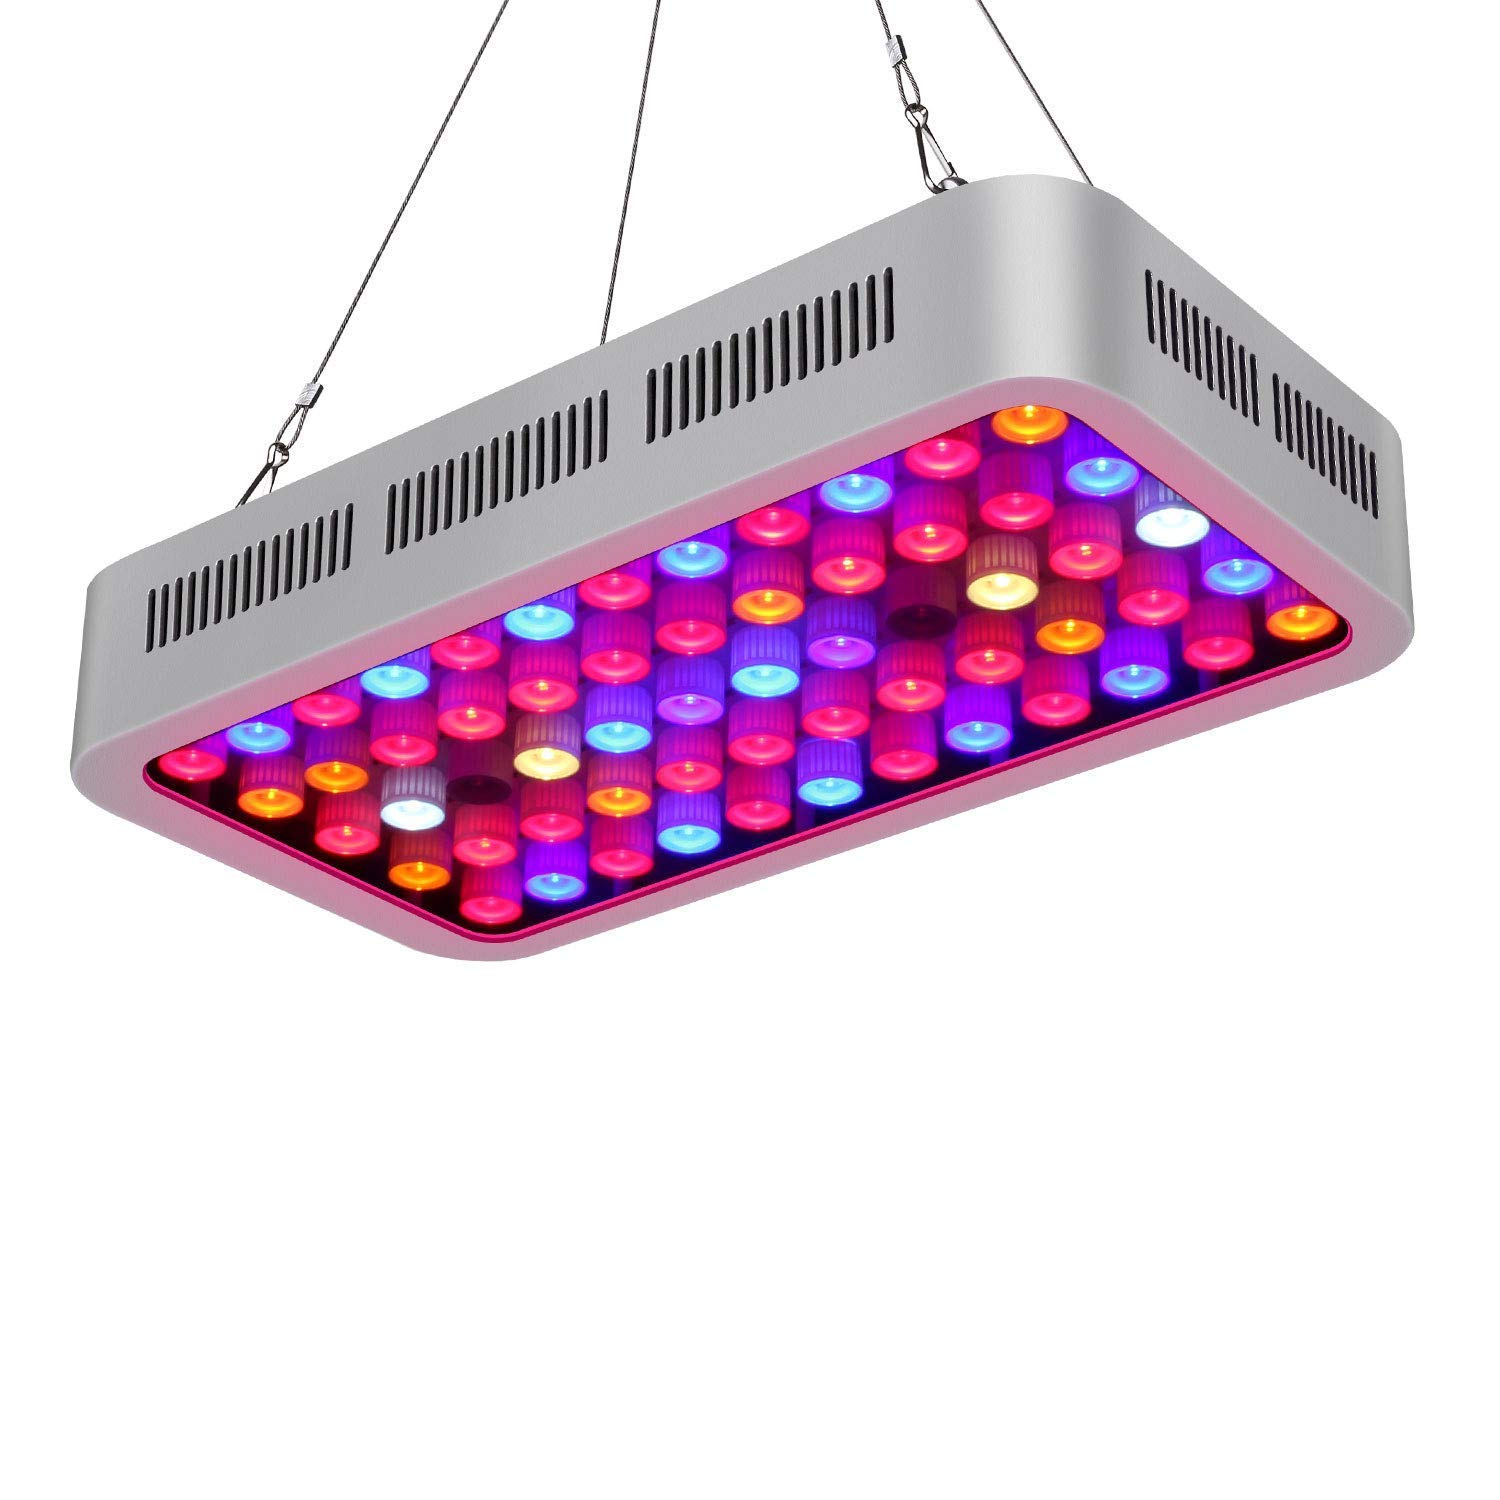 TOPLANET Led Grow Light 600W Plant Lamp Dual Light Channel Veg/Bloom for Indoor Garden Greenhouse Grow Tent Hydroponic Yougelai